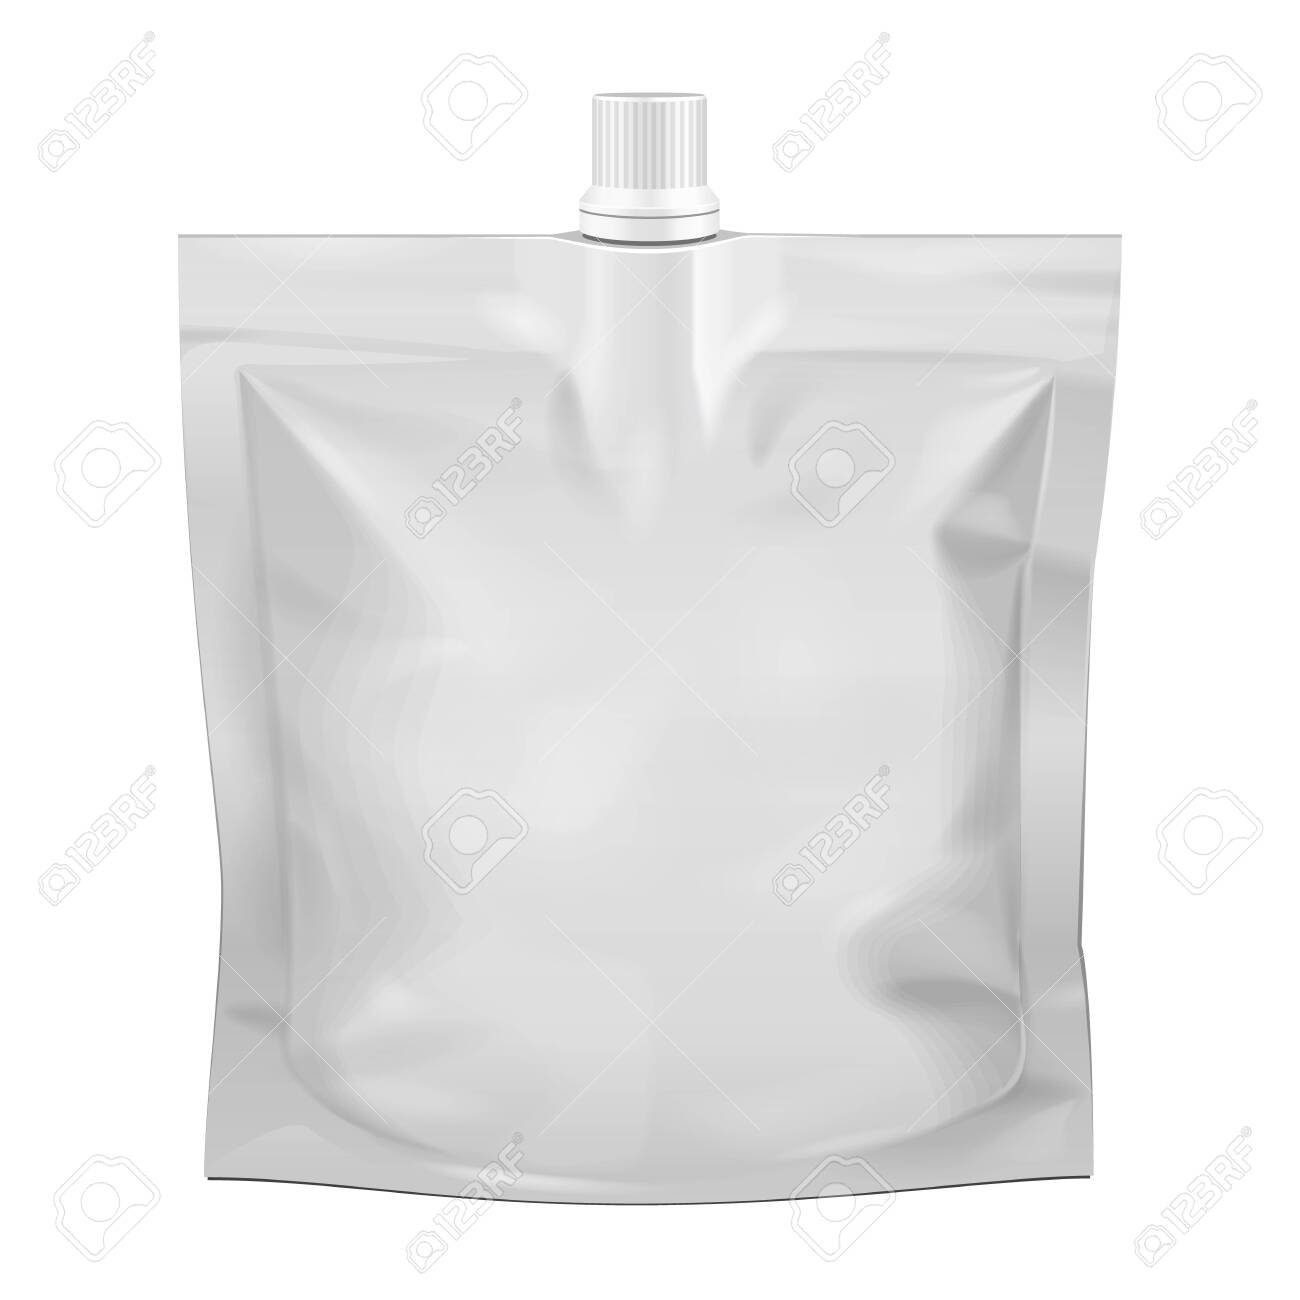 Blank Food Stand Up Flexible Pouch Snack Sachet Bag With Spout Lid. Mock Up, Template. Illustration Isolated On White Background. Ready For Your Design. Product Packaging. Vector EPS10 - 123084797